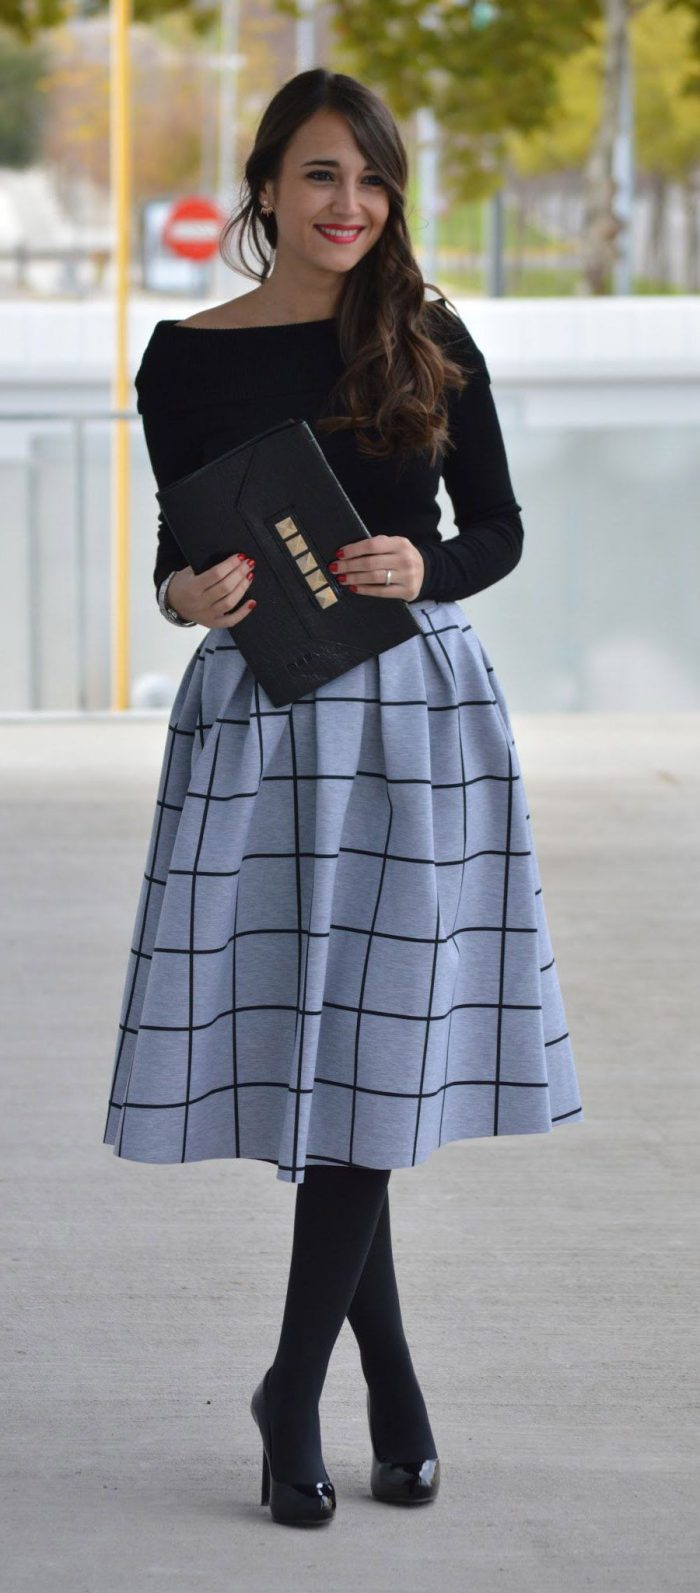 2018 Midi Skirts For Women Best Looks To Copy (12)